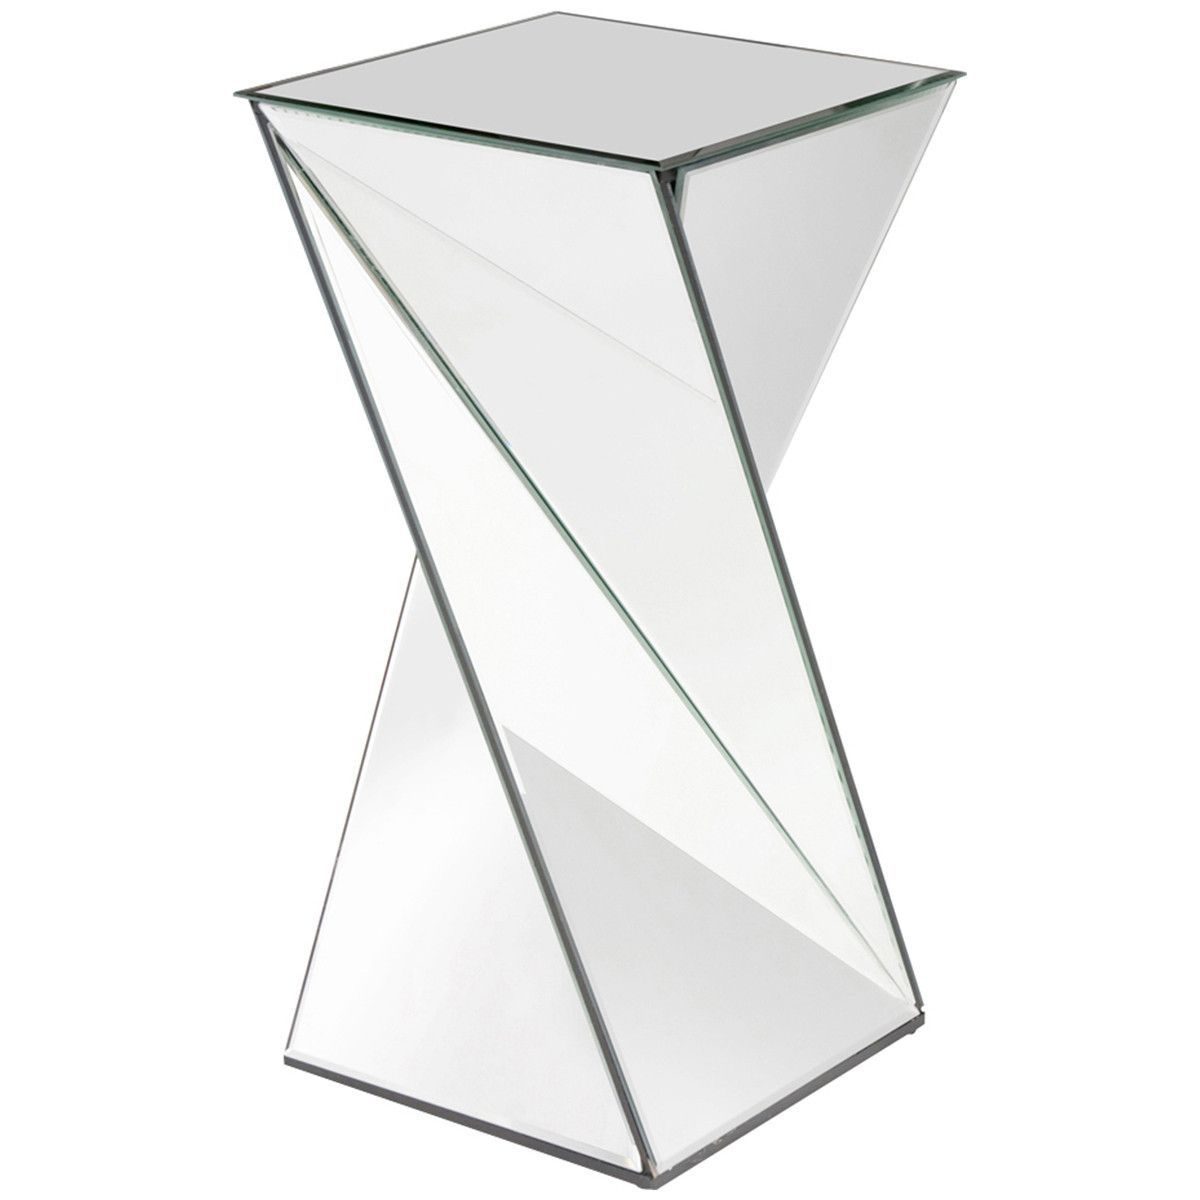 Howard elliott aries twisted mirrored end table products howard elliott aries twisted mirrored end table geotapseo Image collections